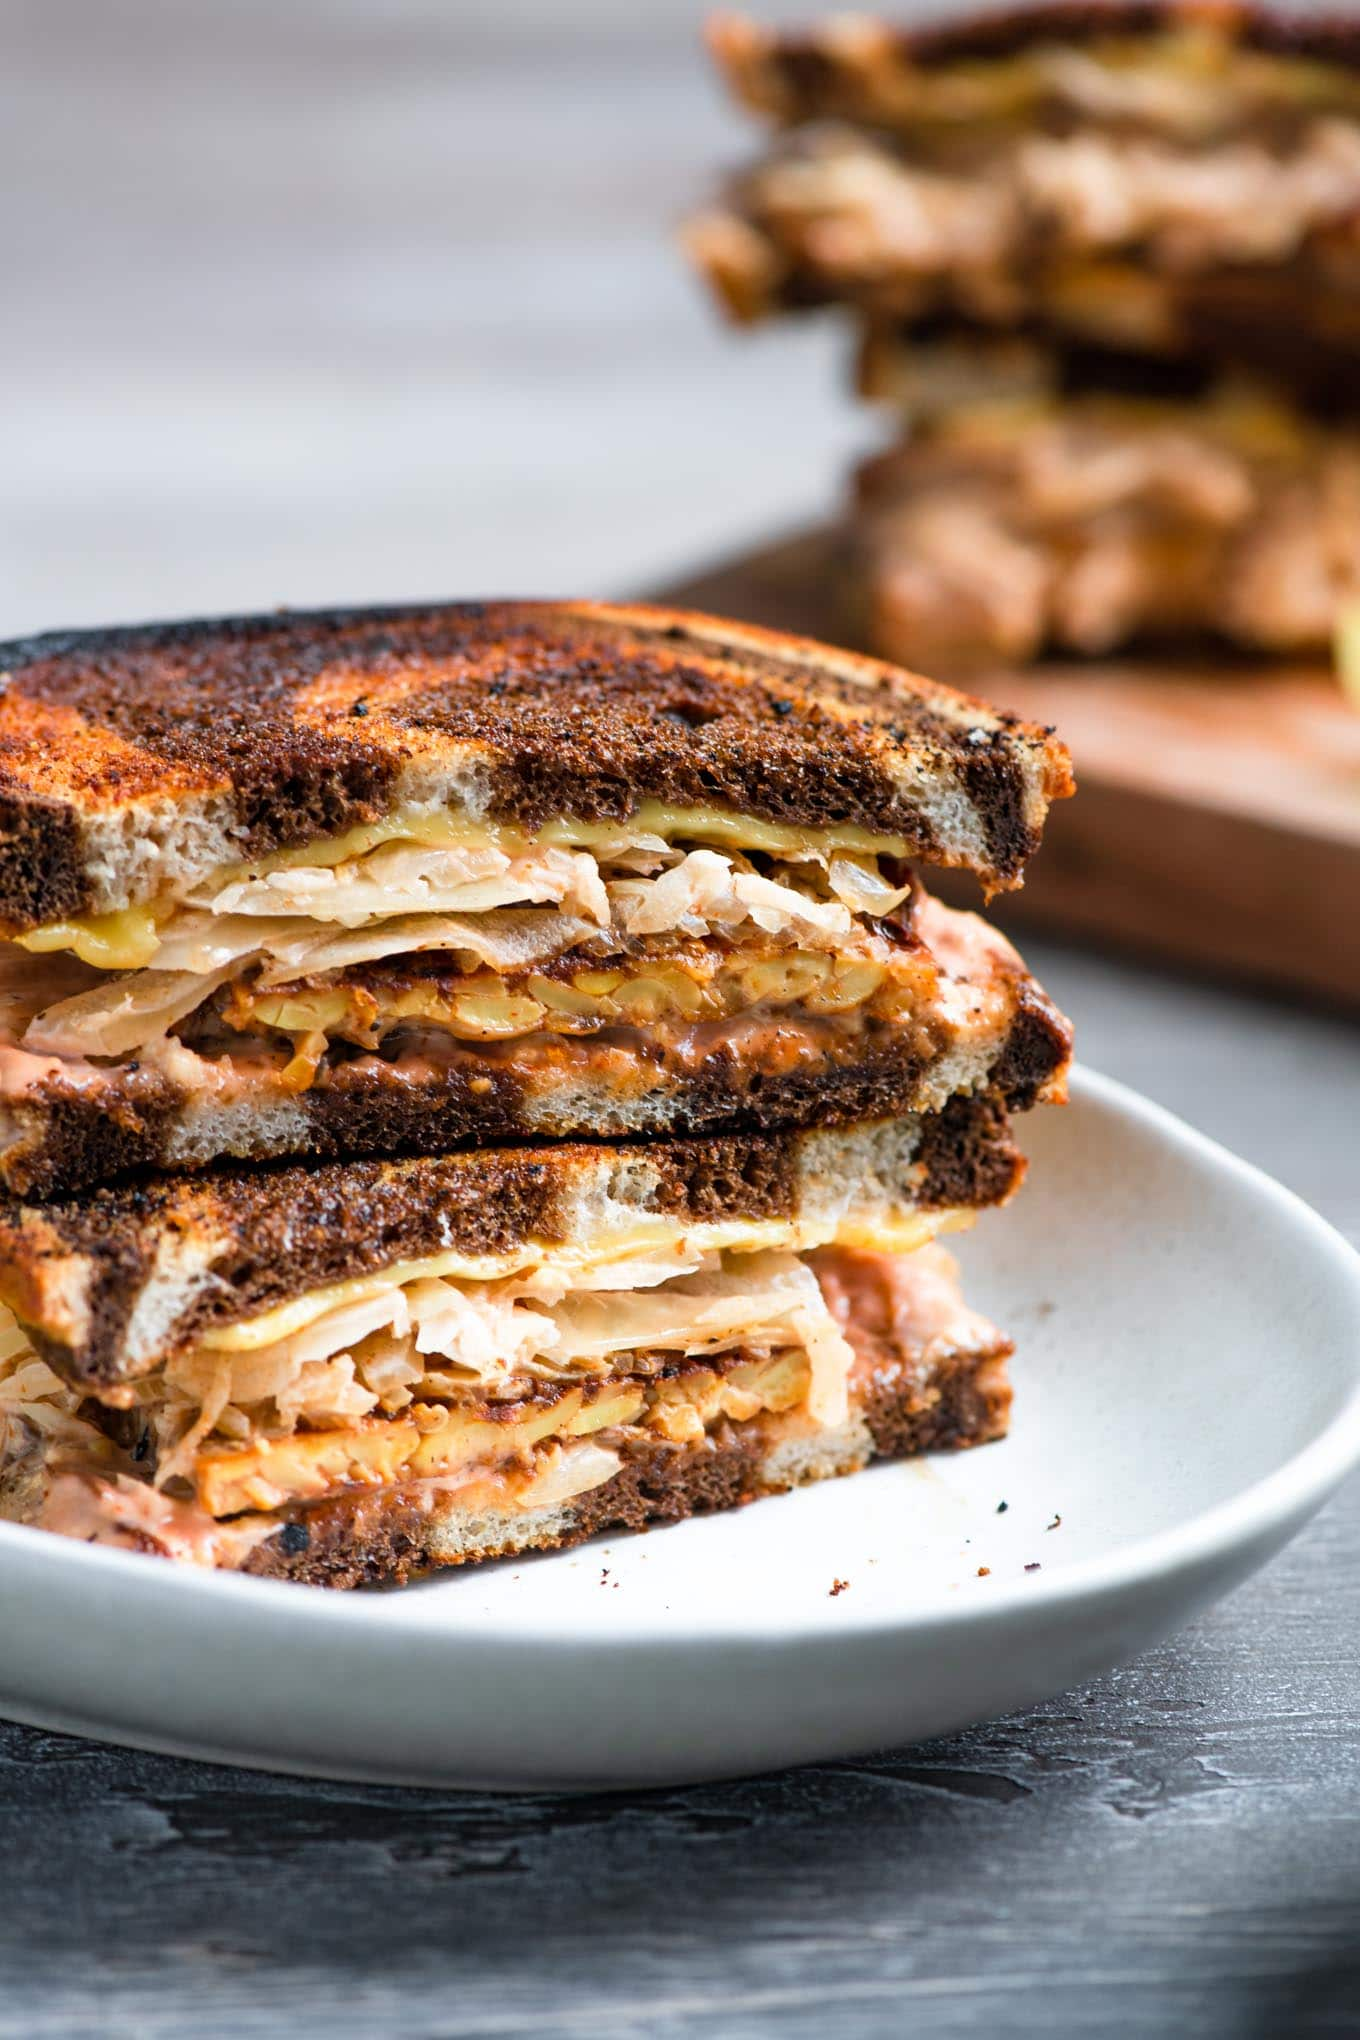 vegan reuben sandwich assembled on a plate